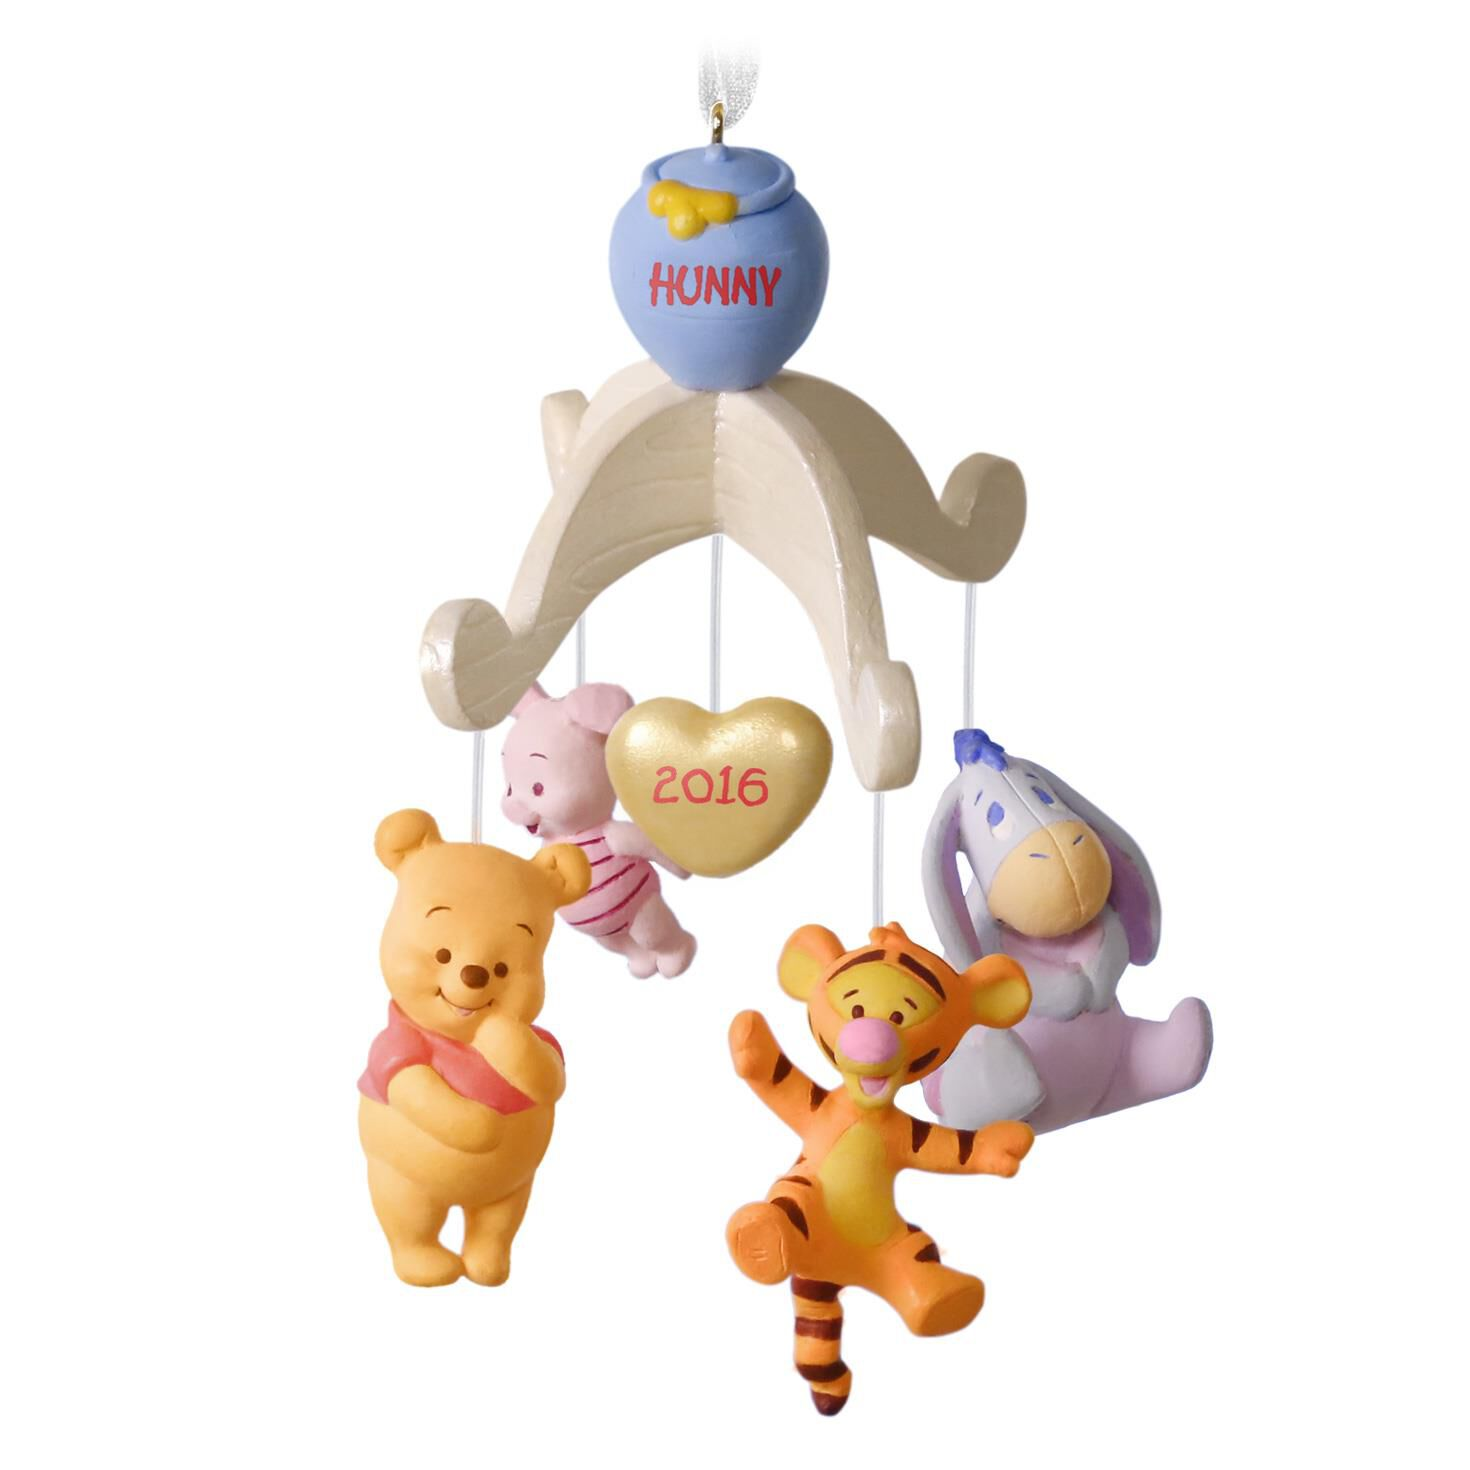 Disney ornament sets - Baby S First Christmas Winnie The Pooh Collection Ornament Keepsake Ornaments Hallmark